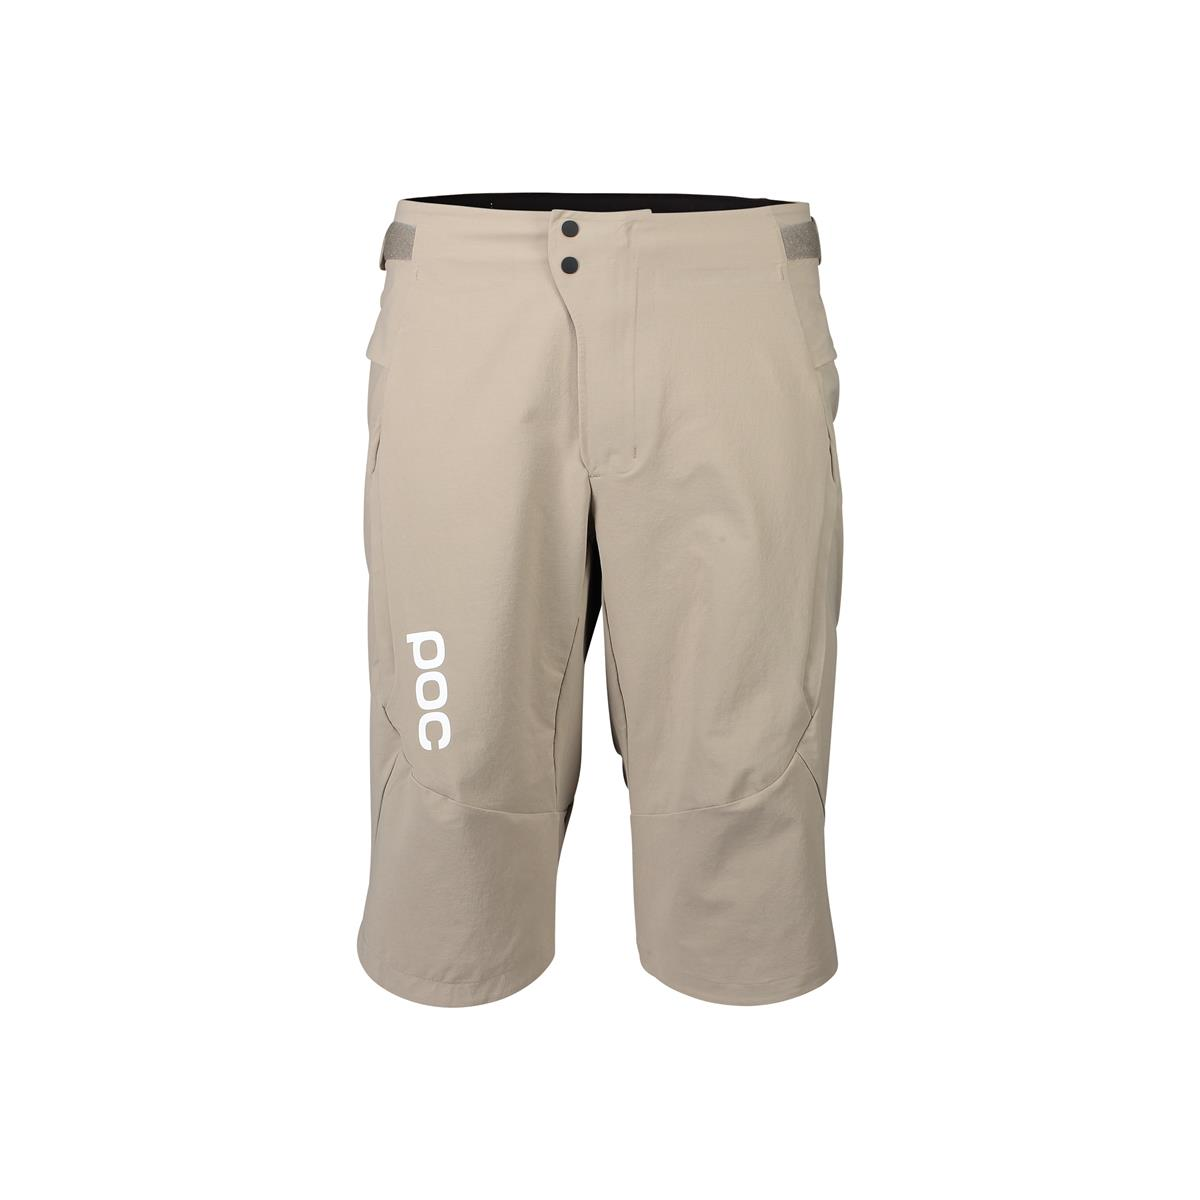 M's Infinite All-mountain shorts Moonstone Grey size XL